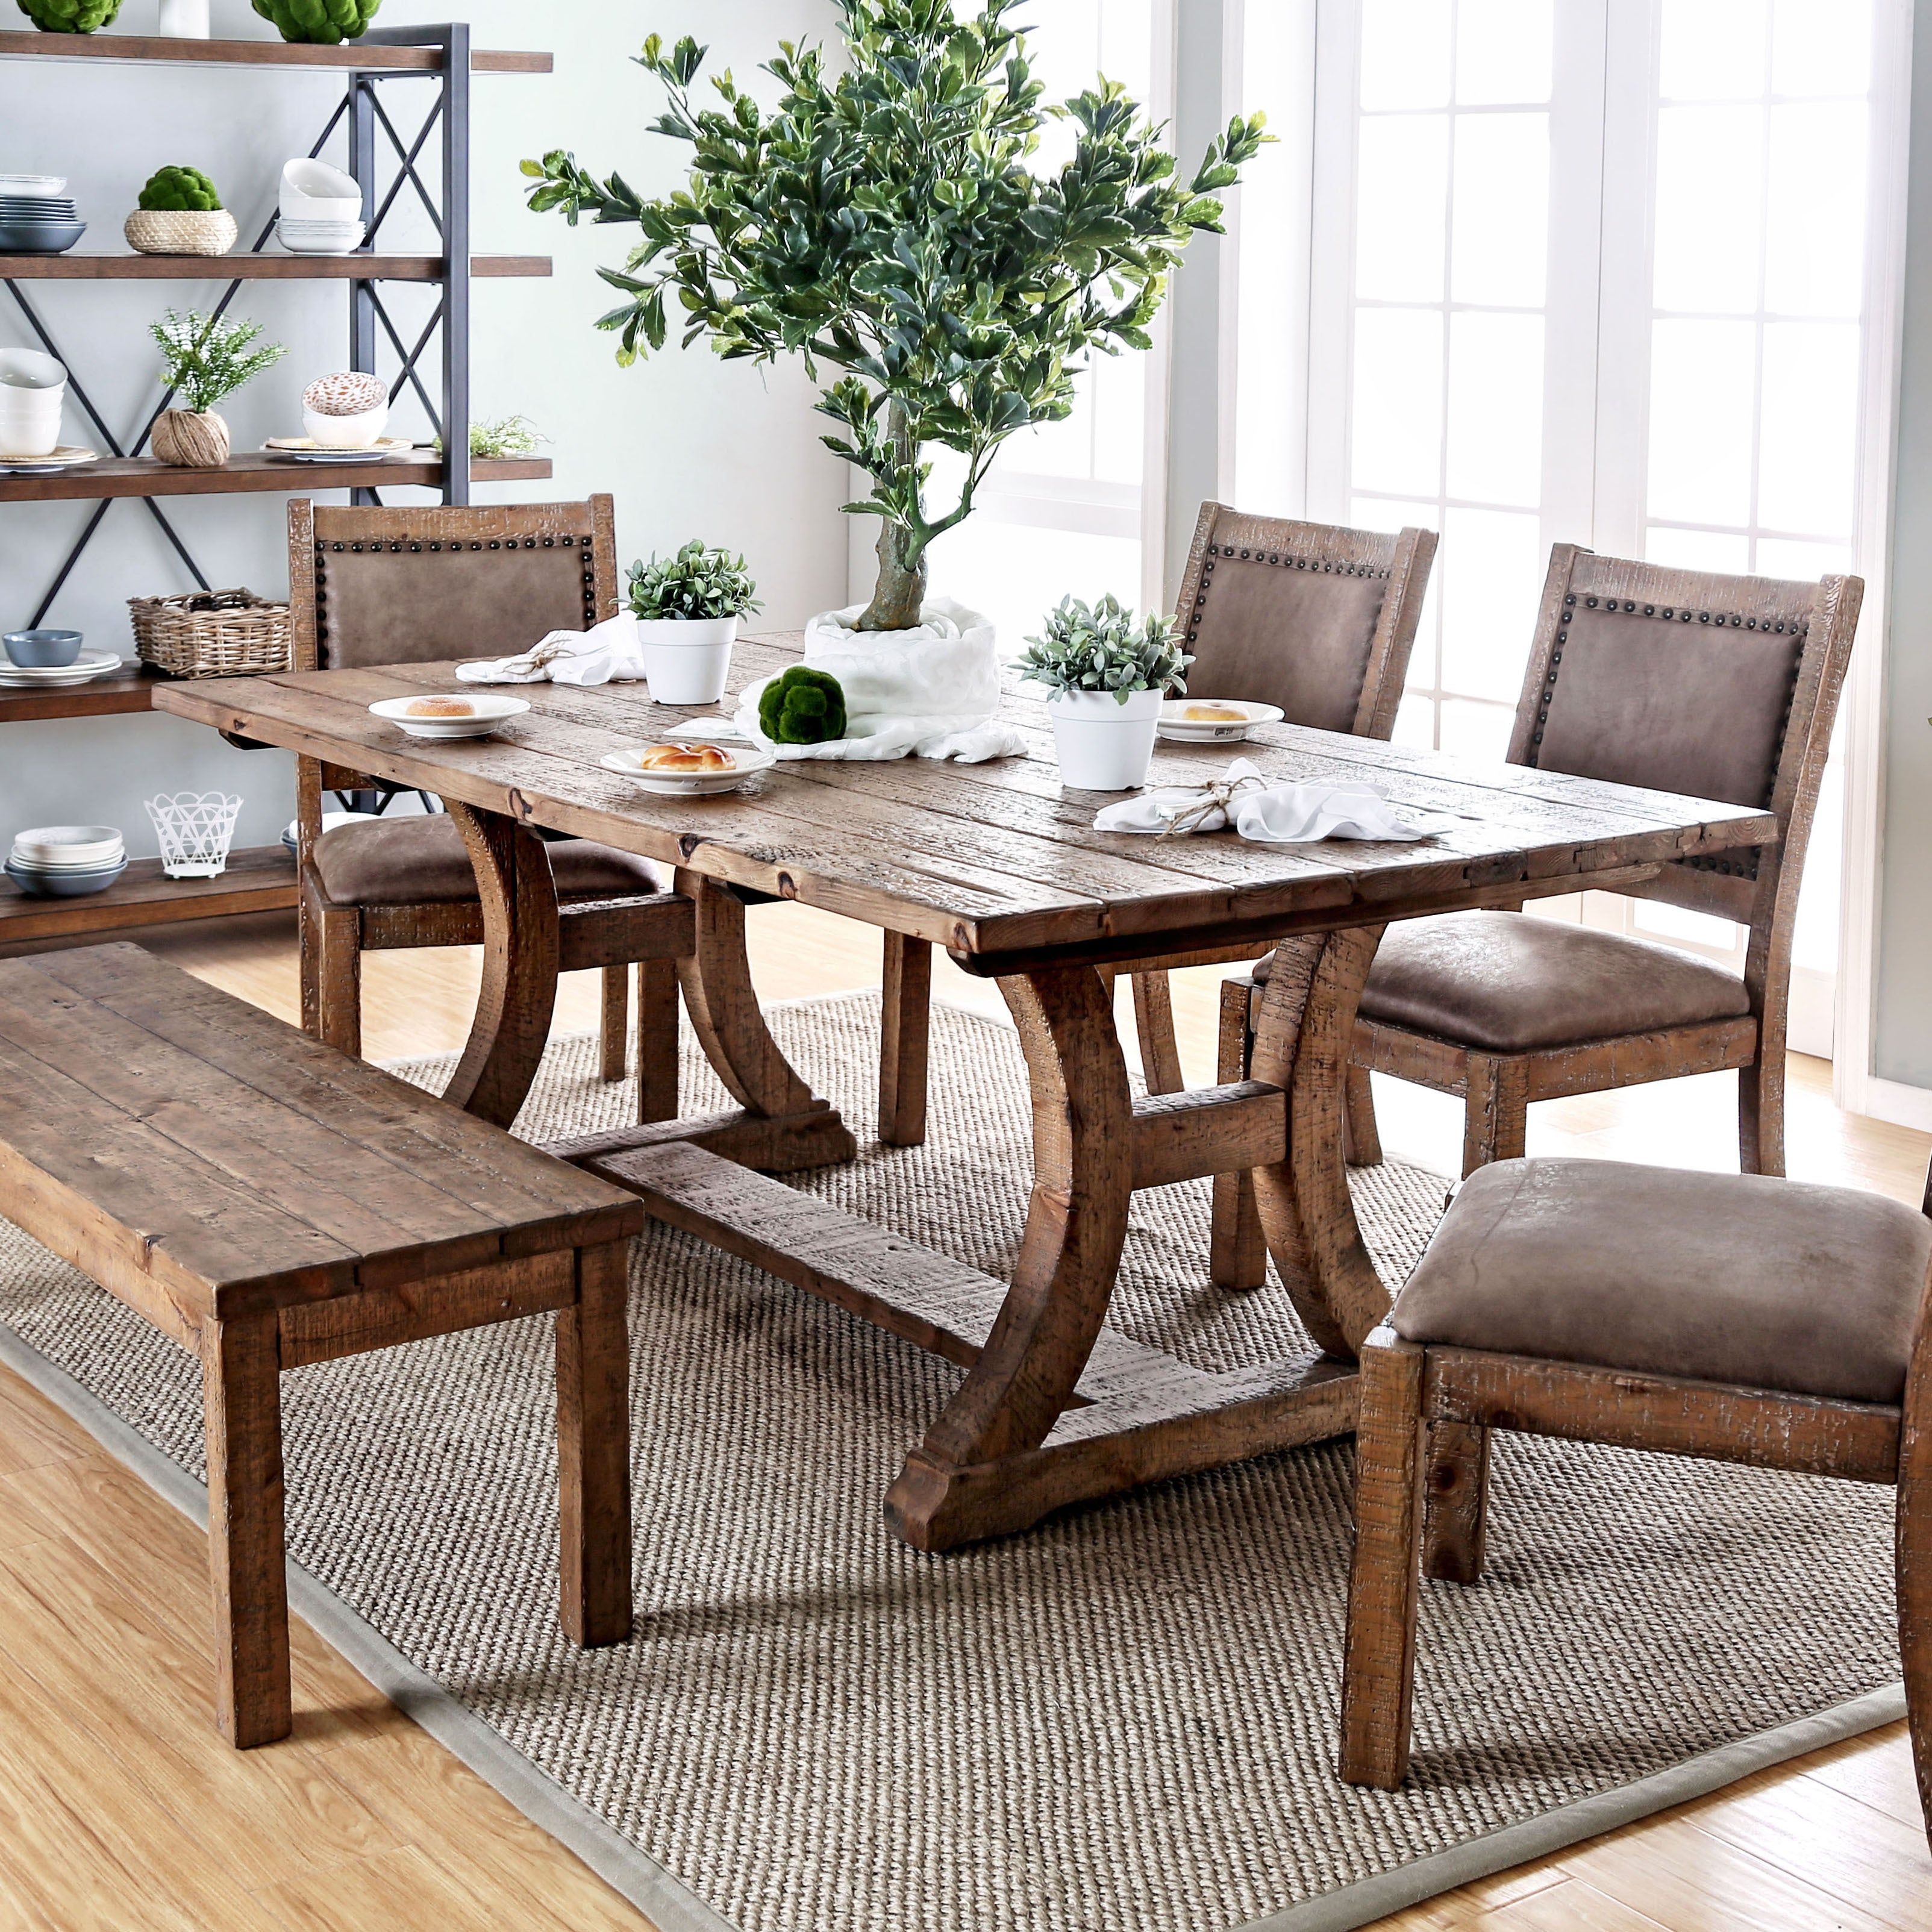 Matthias Rustic Pine Dining Table By Foa On Free Shipping Today 11149919